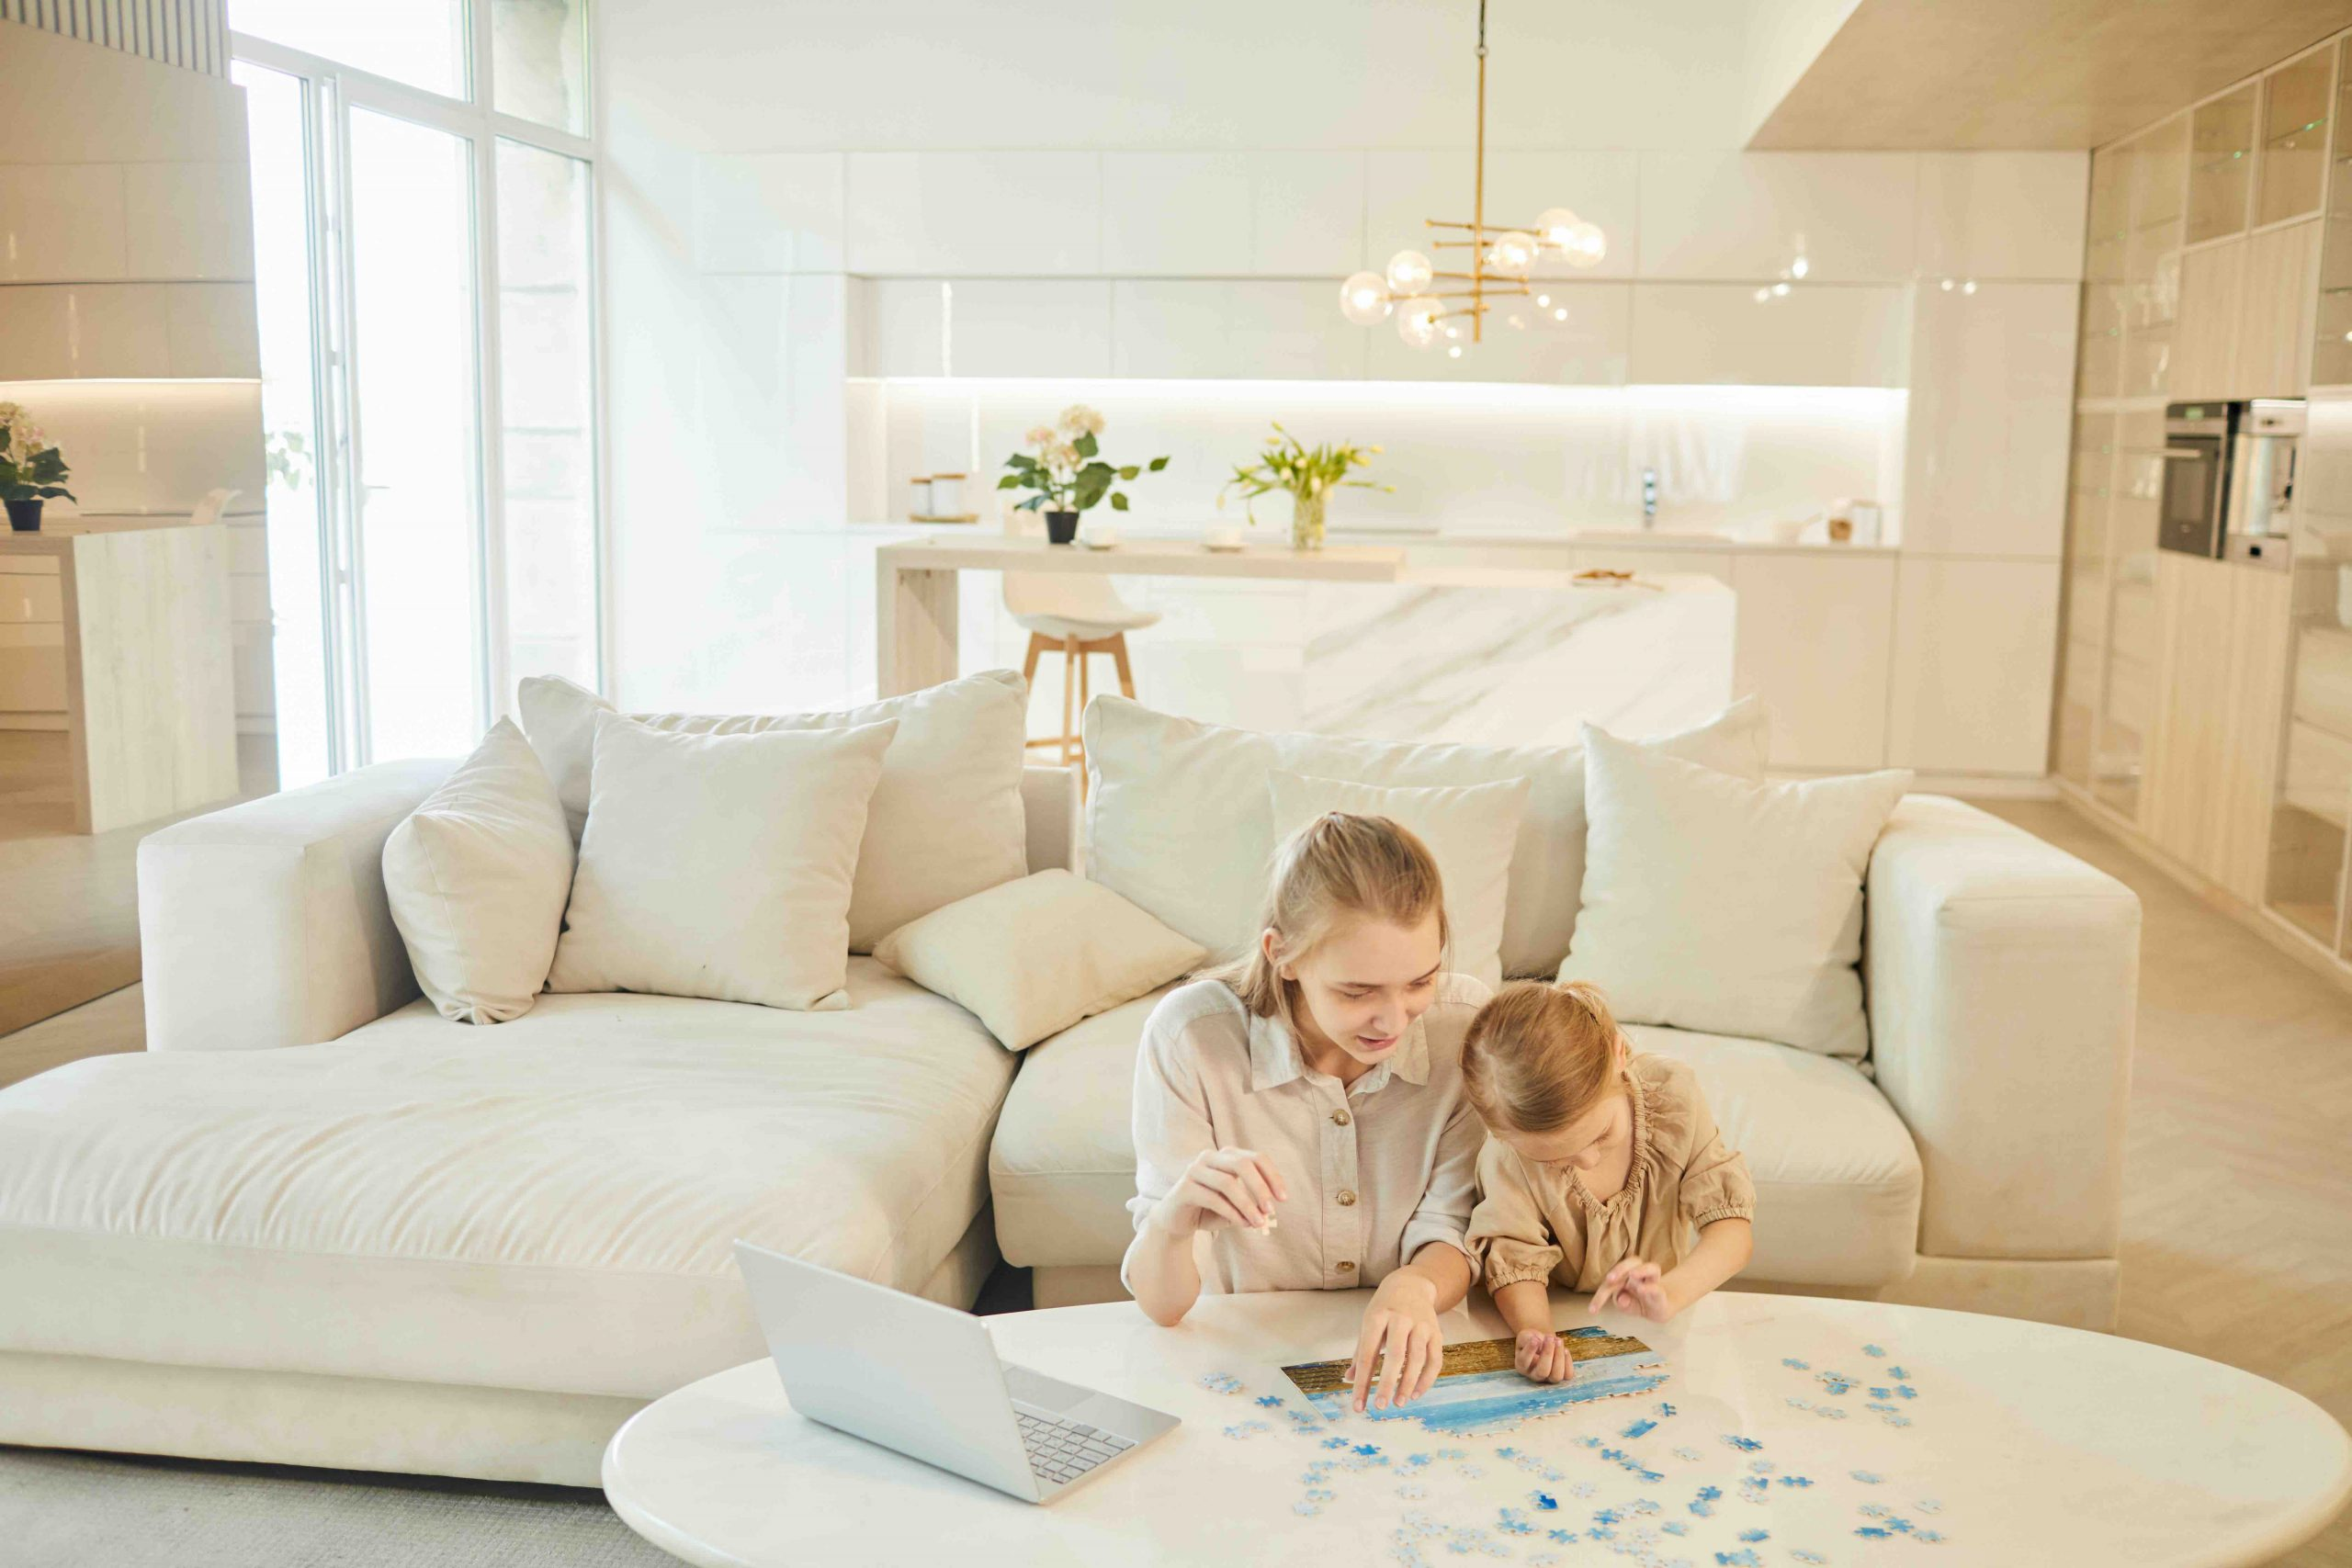 Warm-toned wide angle portrait of two sisters solving puzzle together while enjoying time at home indoors in minimal white interior, copy space